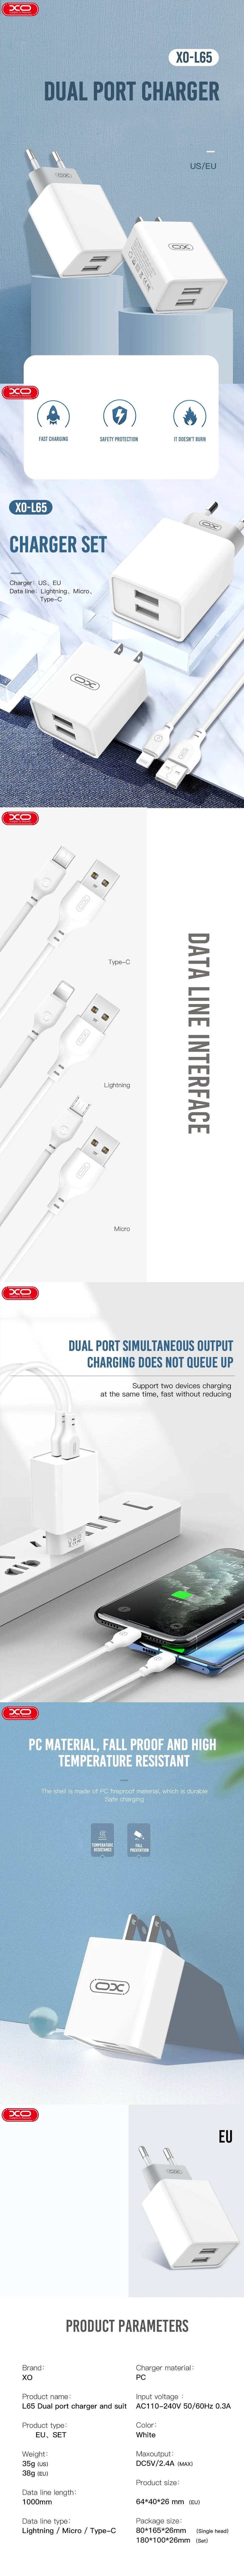 XO Wall charger L65 white plus cable 8-pin 2USB 2,4A